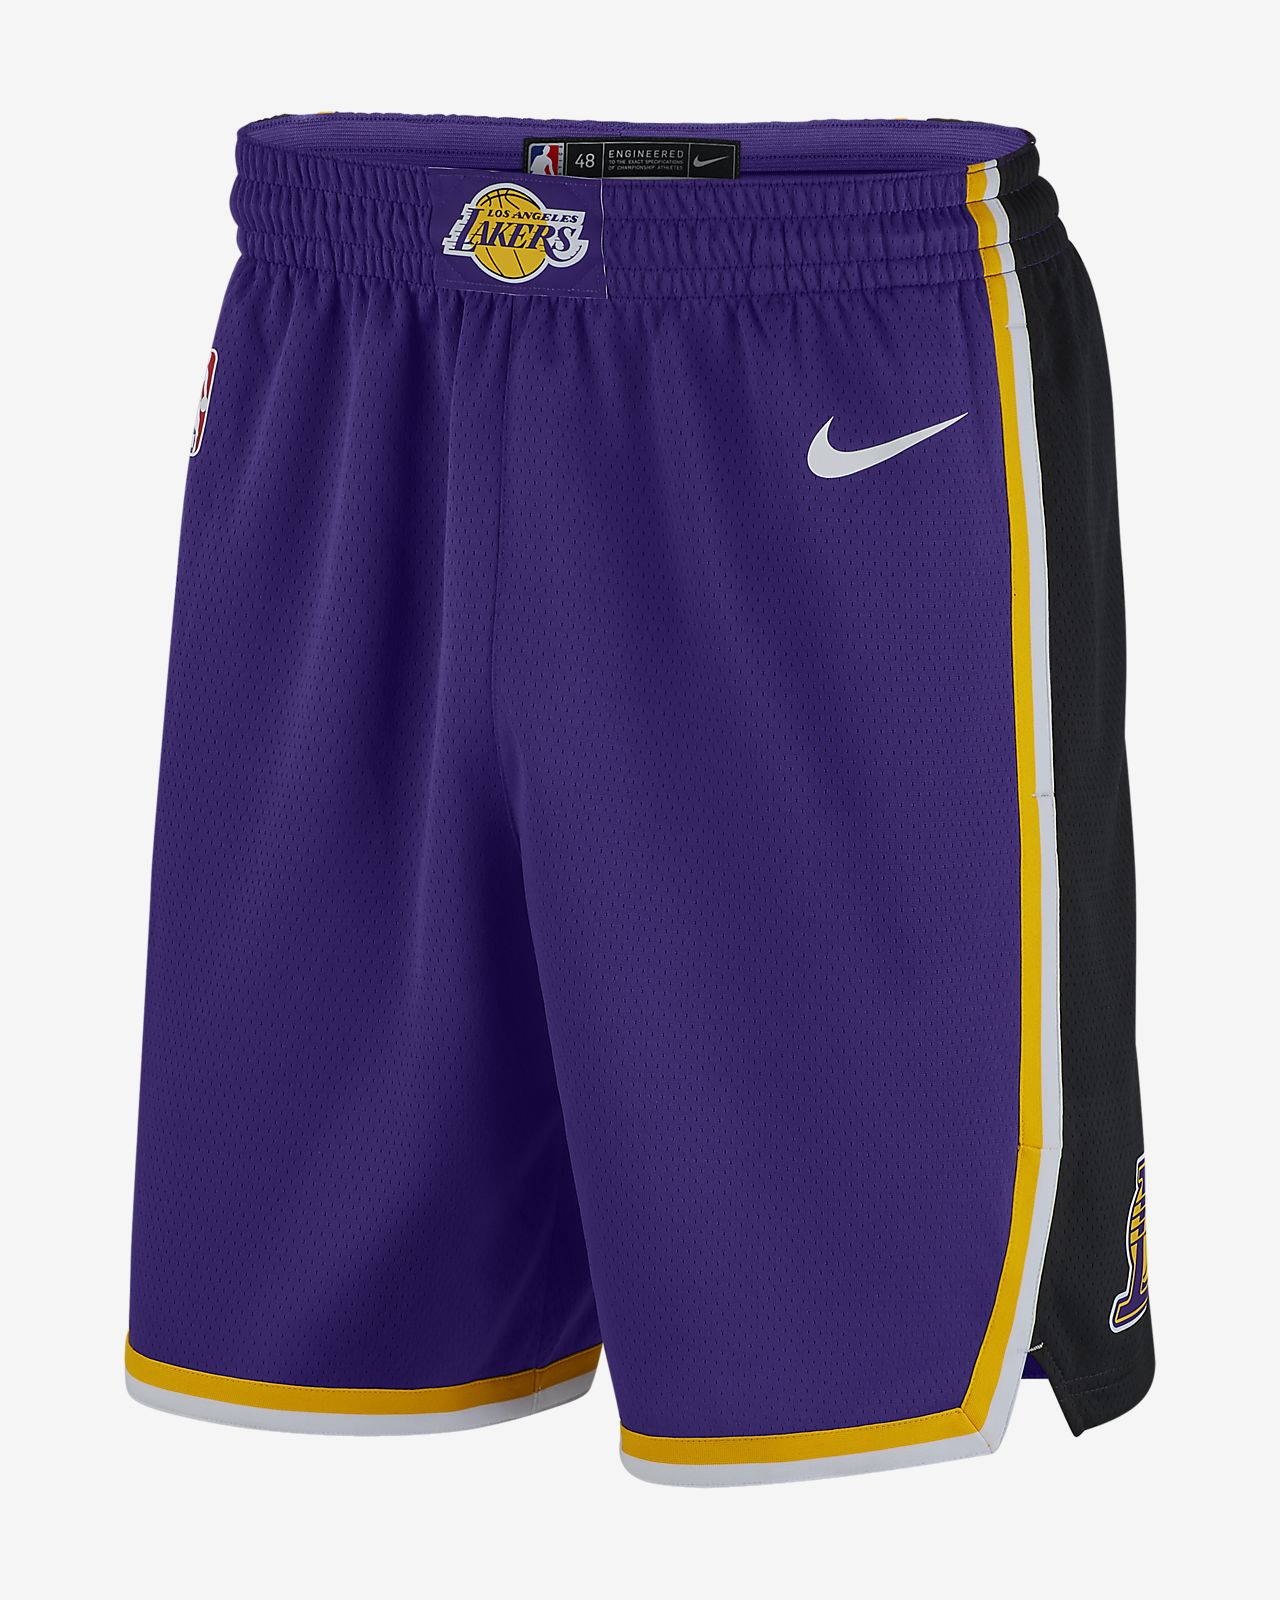 Los Angeles Lakers Statement Edition Swingman-Nike NBA-shorts til mænd